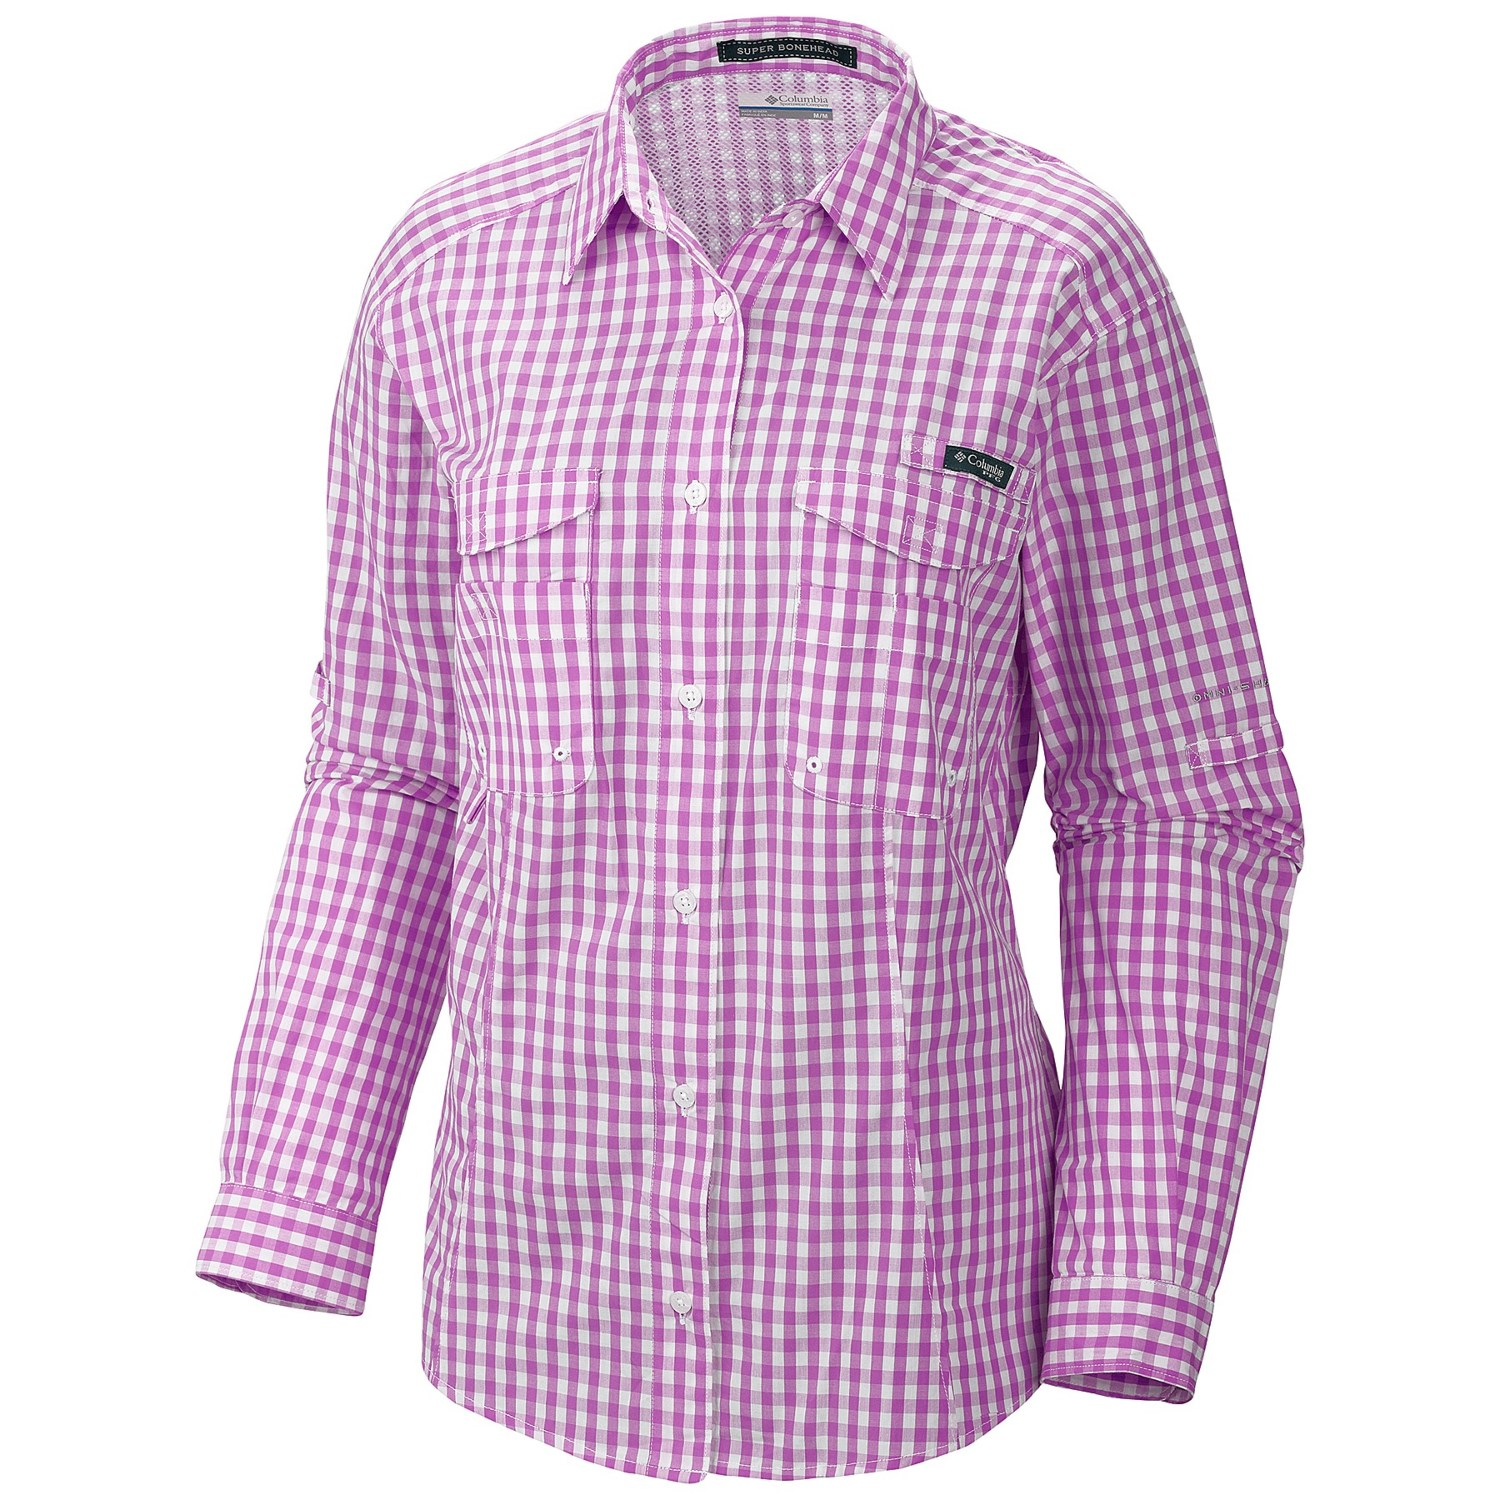 Columbia sportswear pfg super bonehead shirt upf 30 for Columbia shirts womens pfg